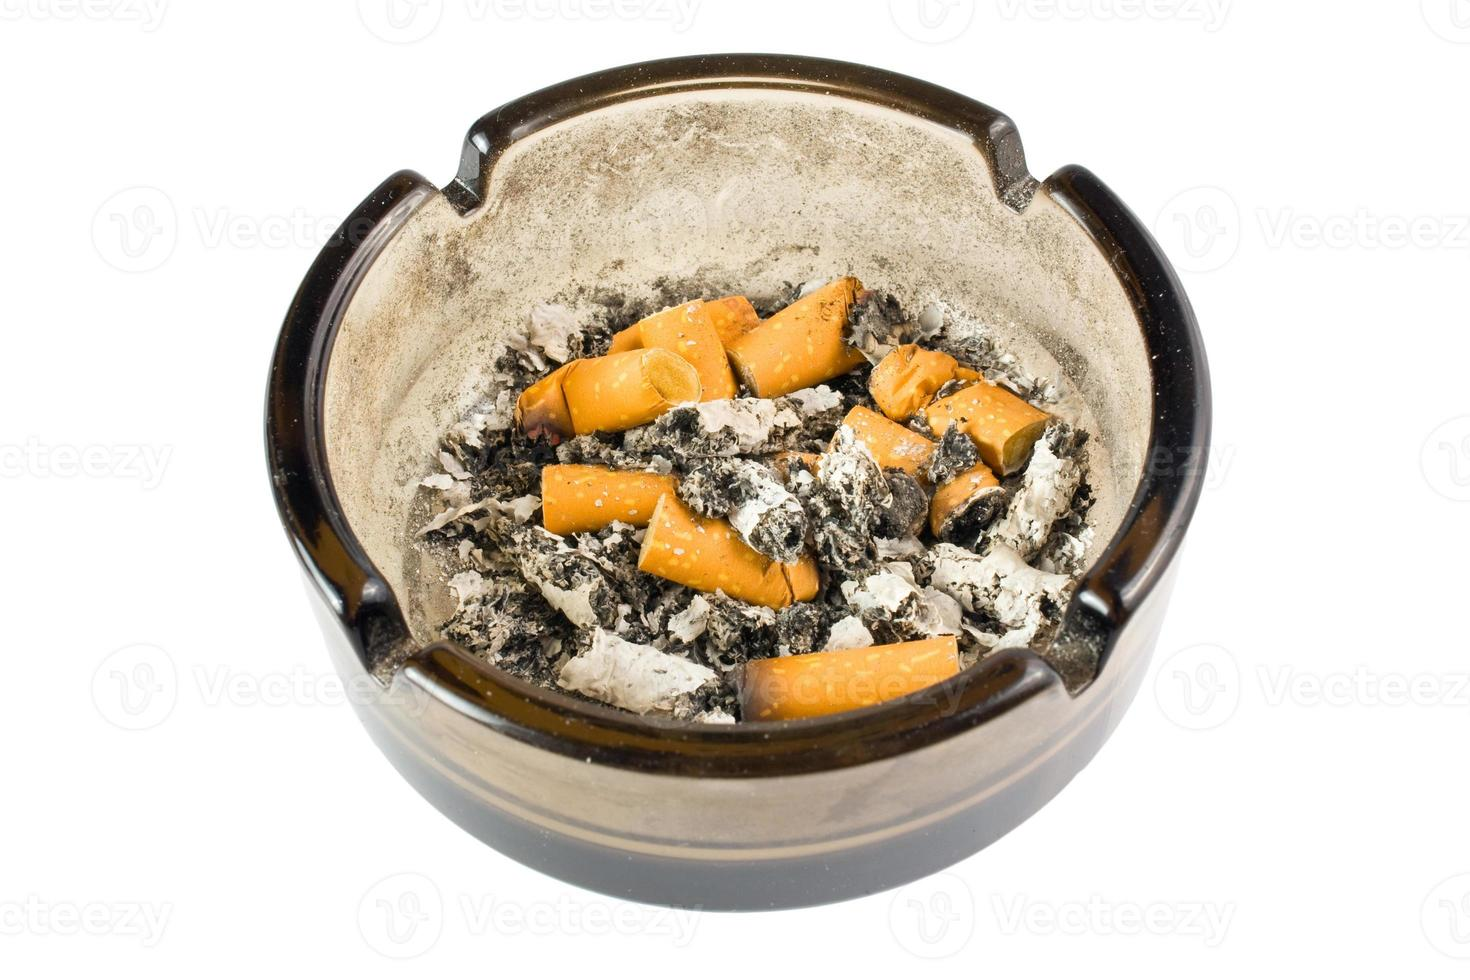 ashtray on white background photo